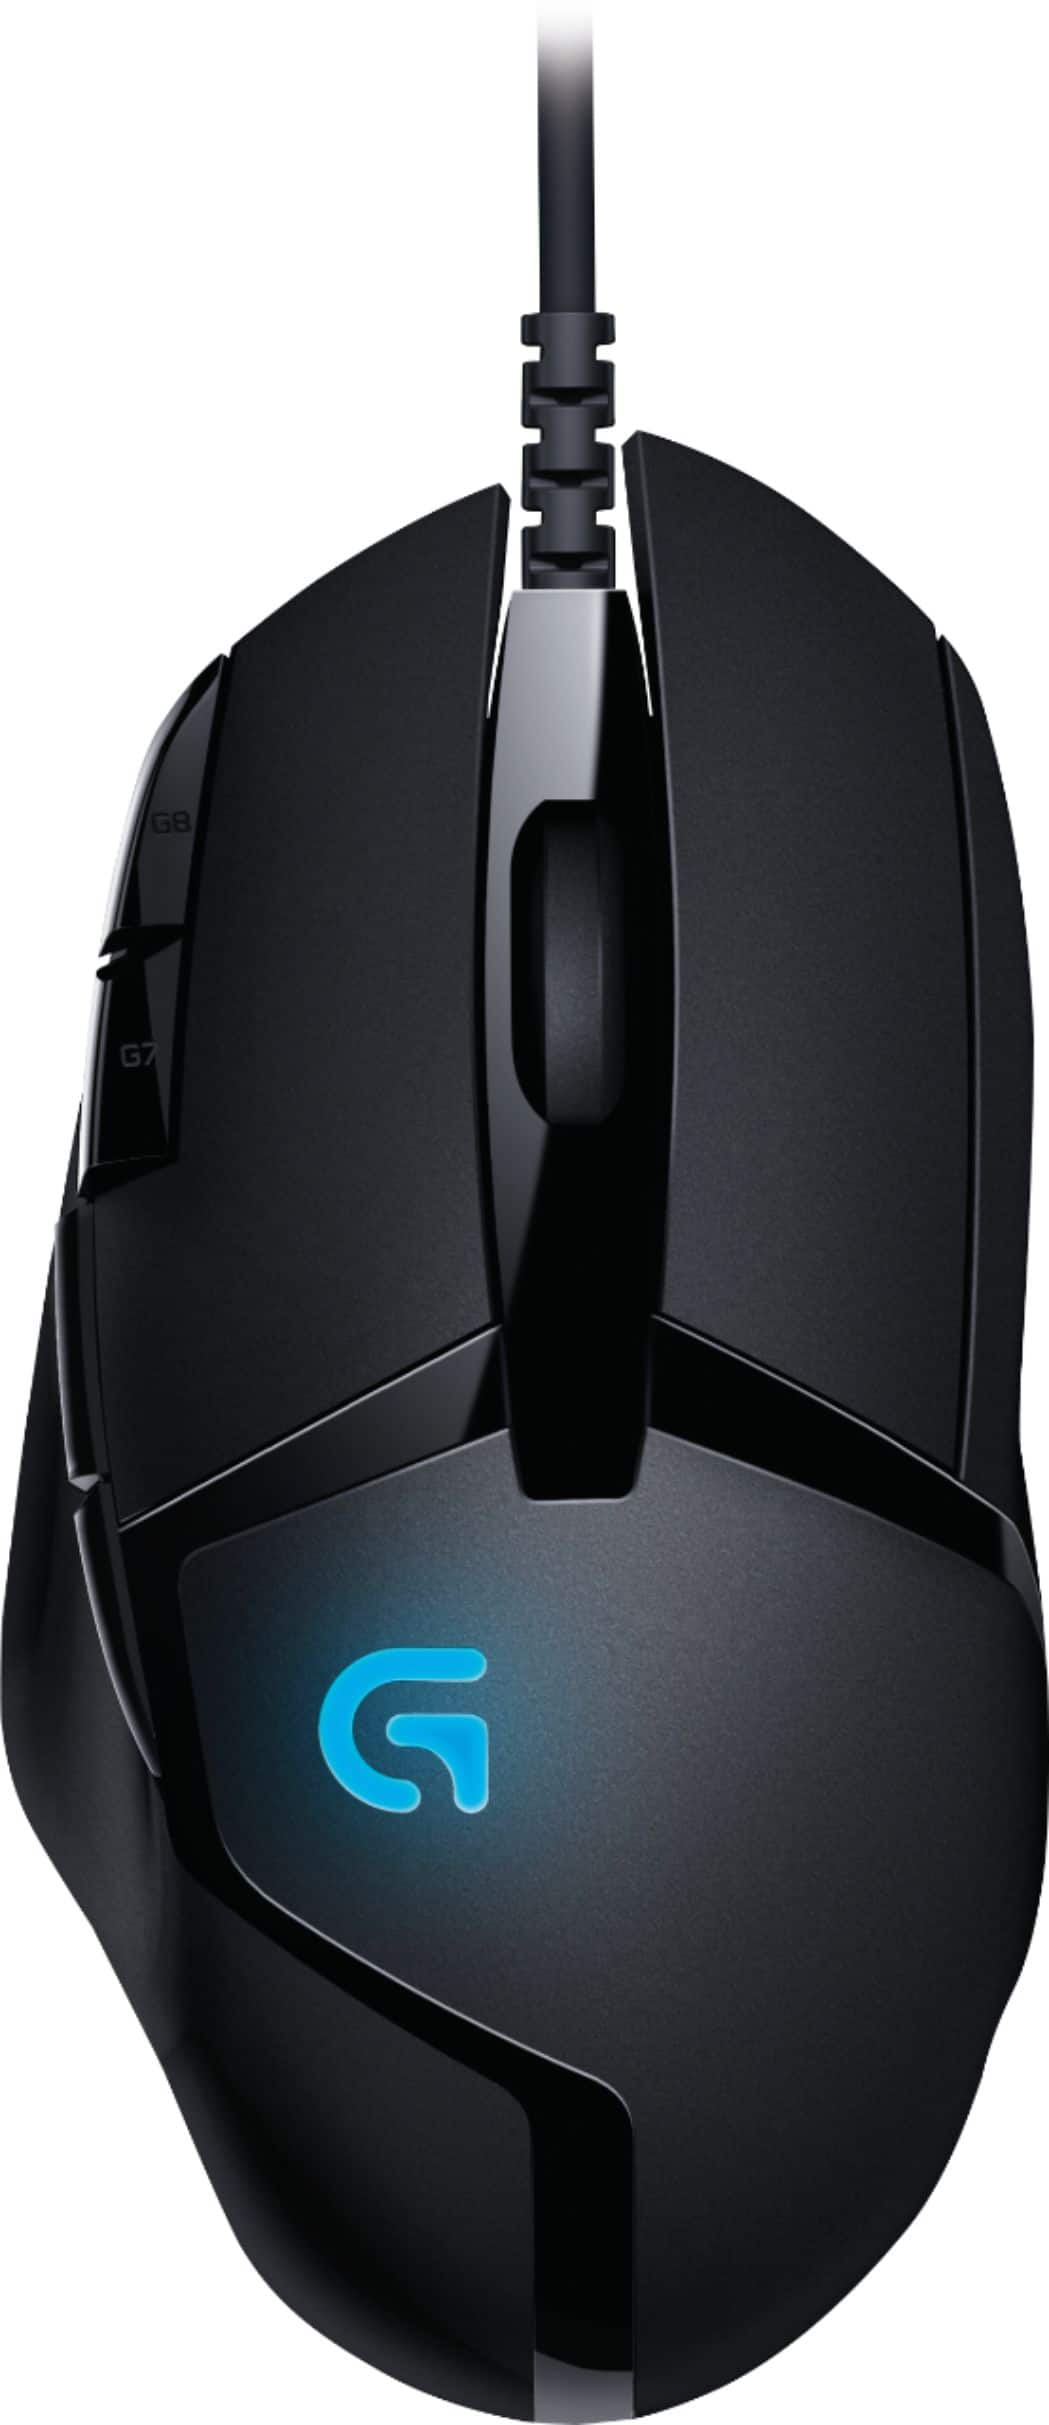 Logitech G402 Hyperion Fury FPS Gaming Mouse and g602 (YMMV) $14.99 & 19.99